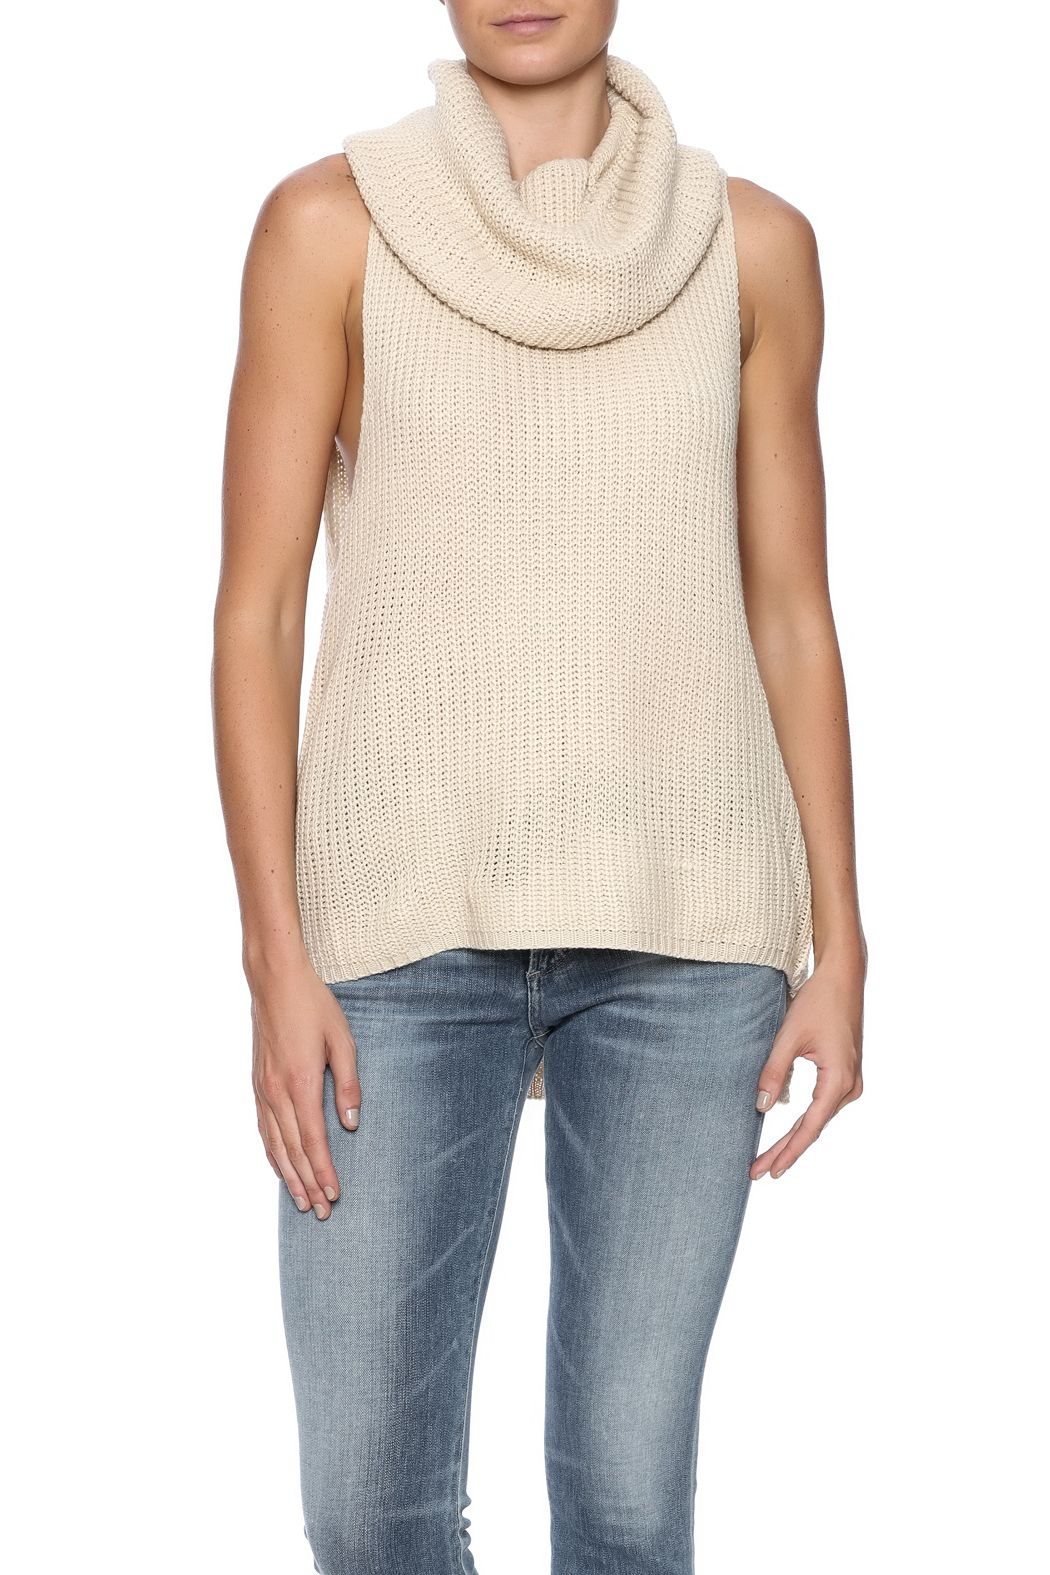 HYFVE Sleeveless Cowl Neck Sweater | Cowl neck and High low